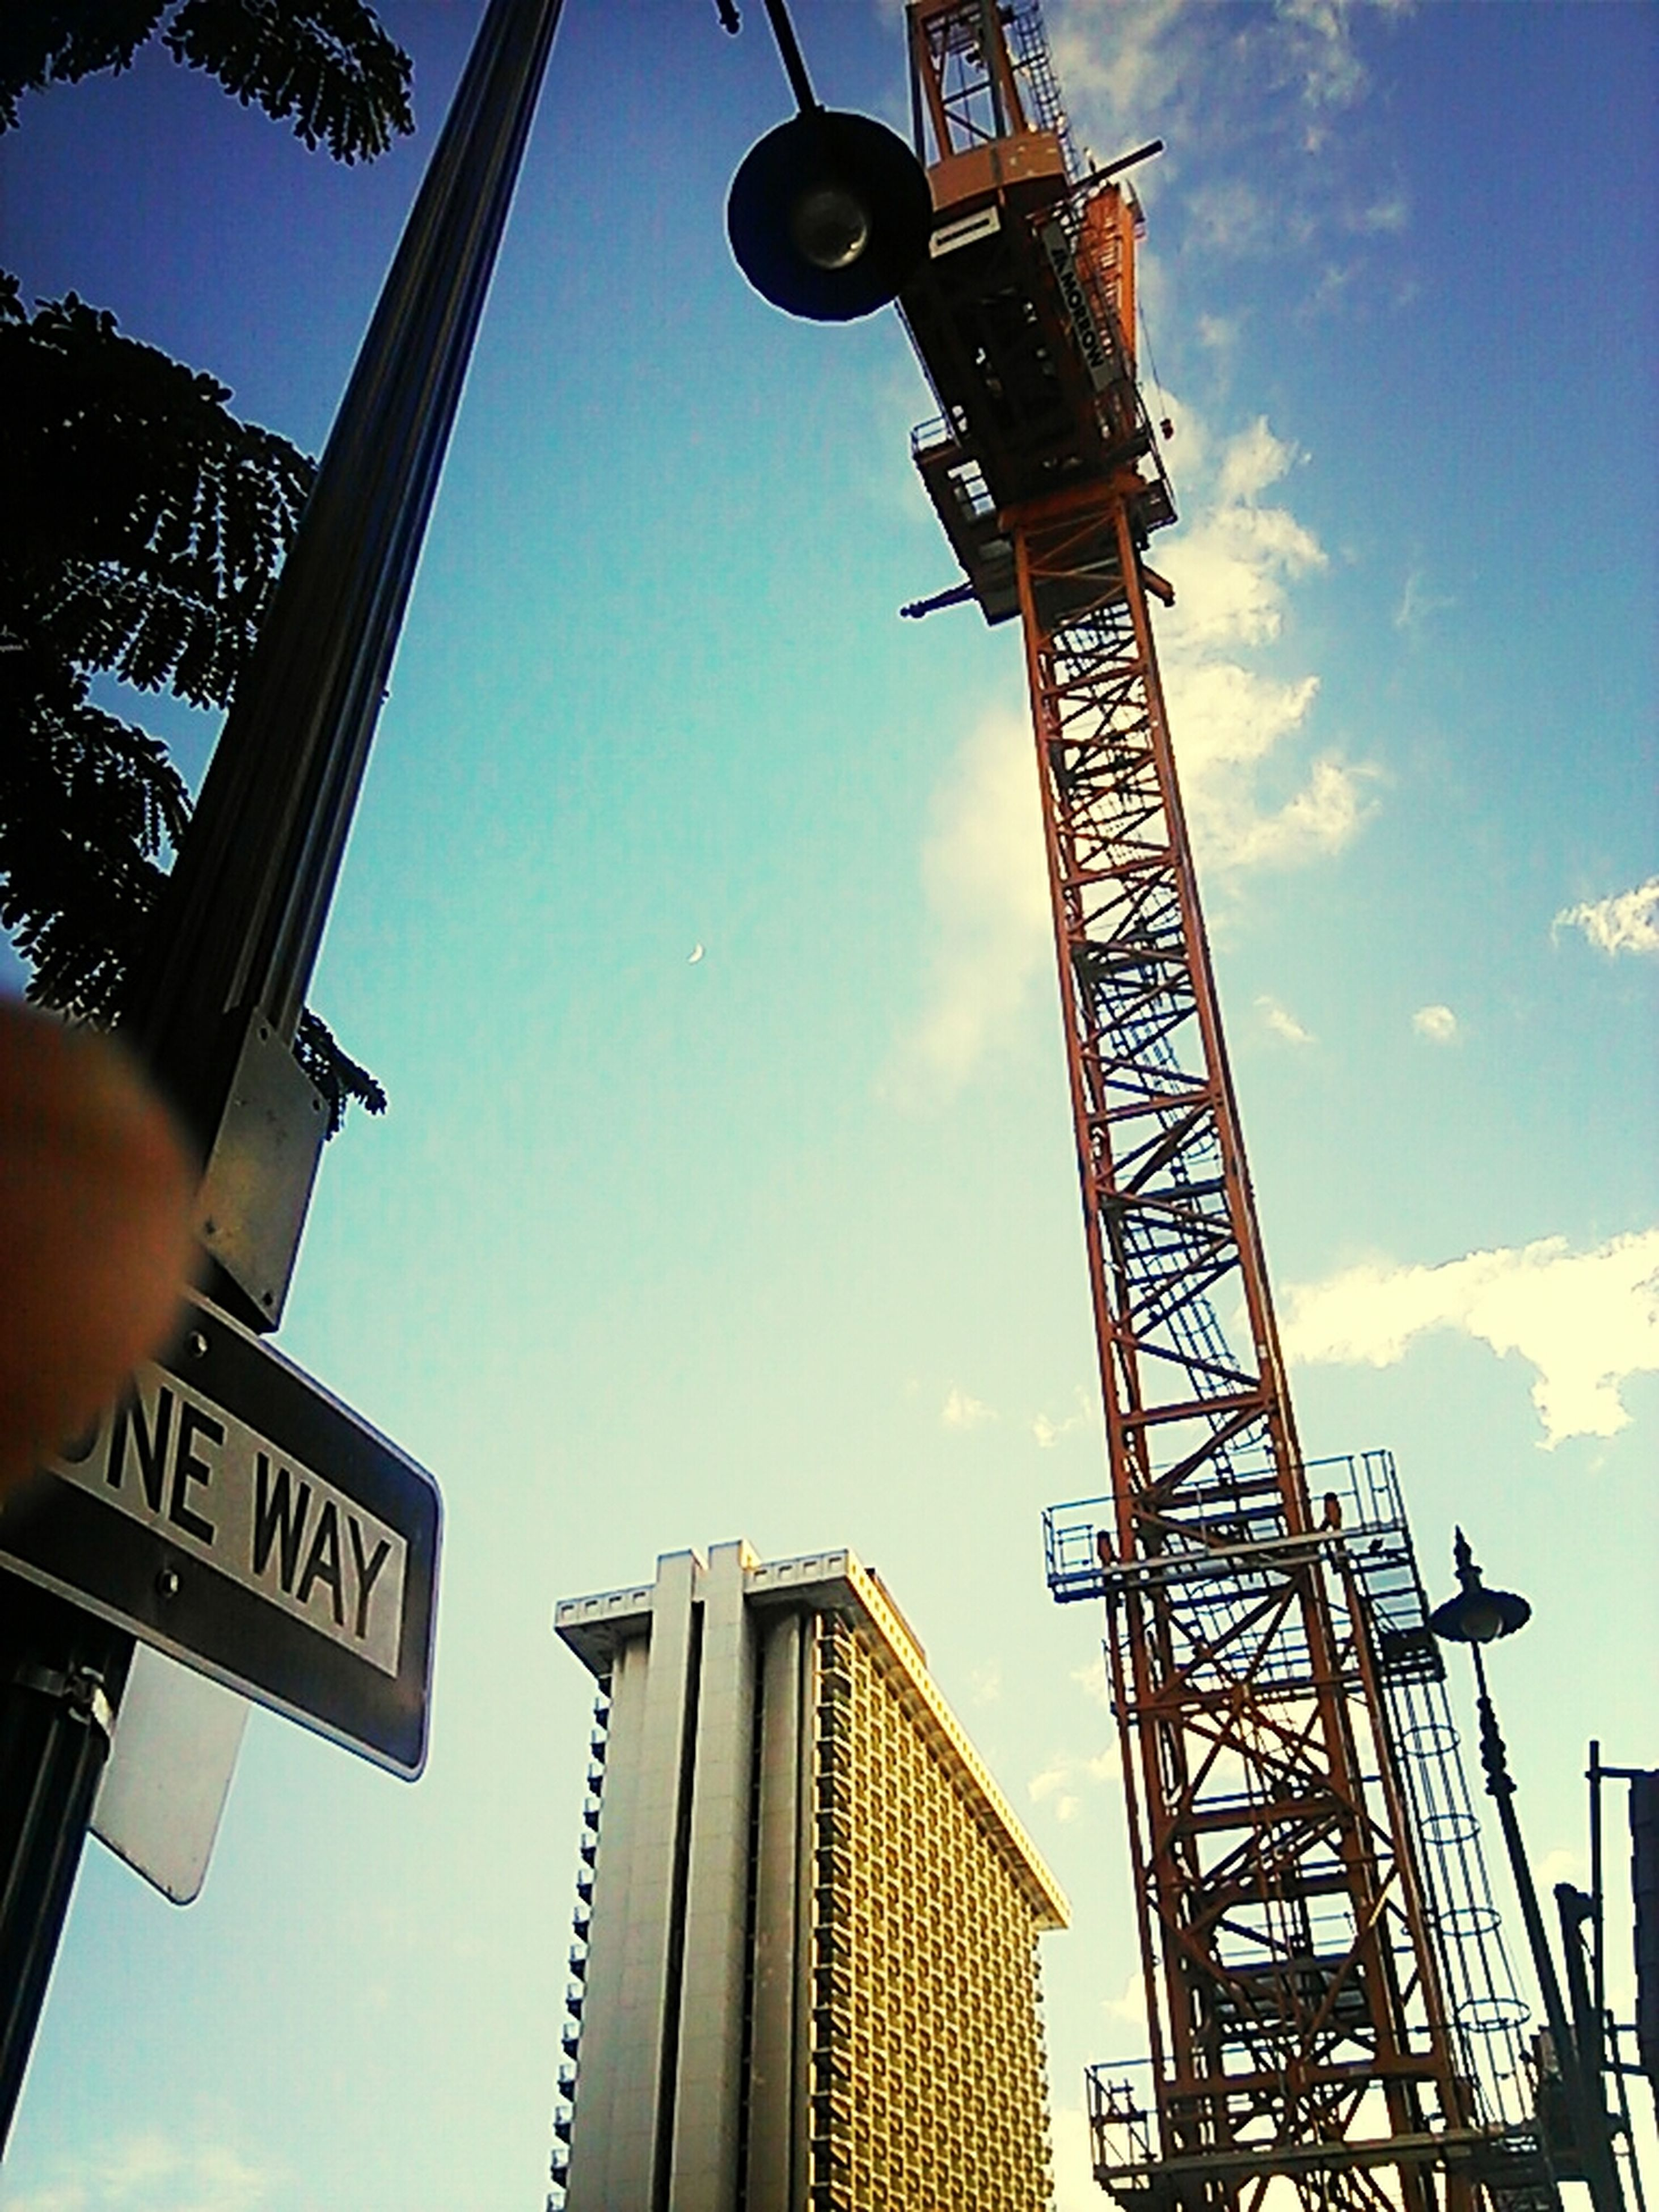 low angle view, architecture, built structure, tower, tall - high, sky, building exterior, communication, communications tower, street light, blue, lighting equipment, tall, outdoors, dusk, no people, city, crane - construction machinery, metal, silhouette